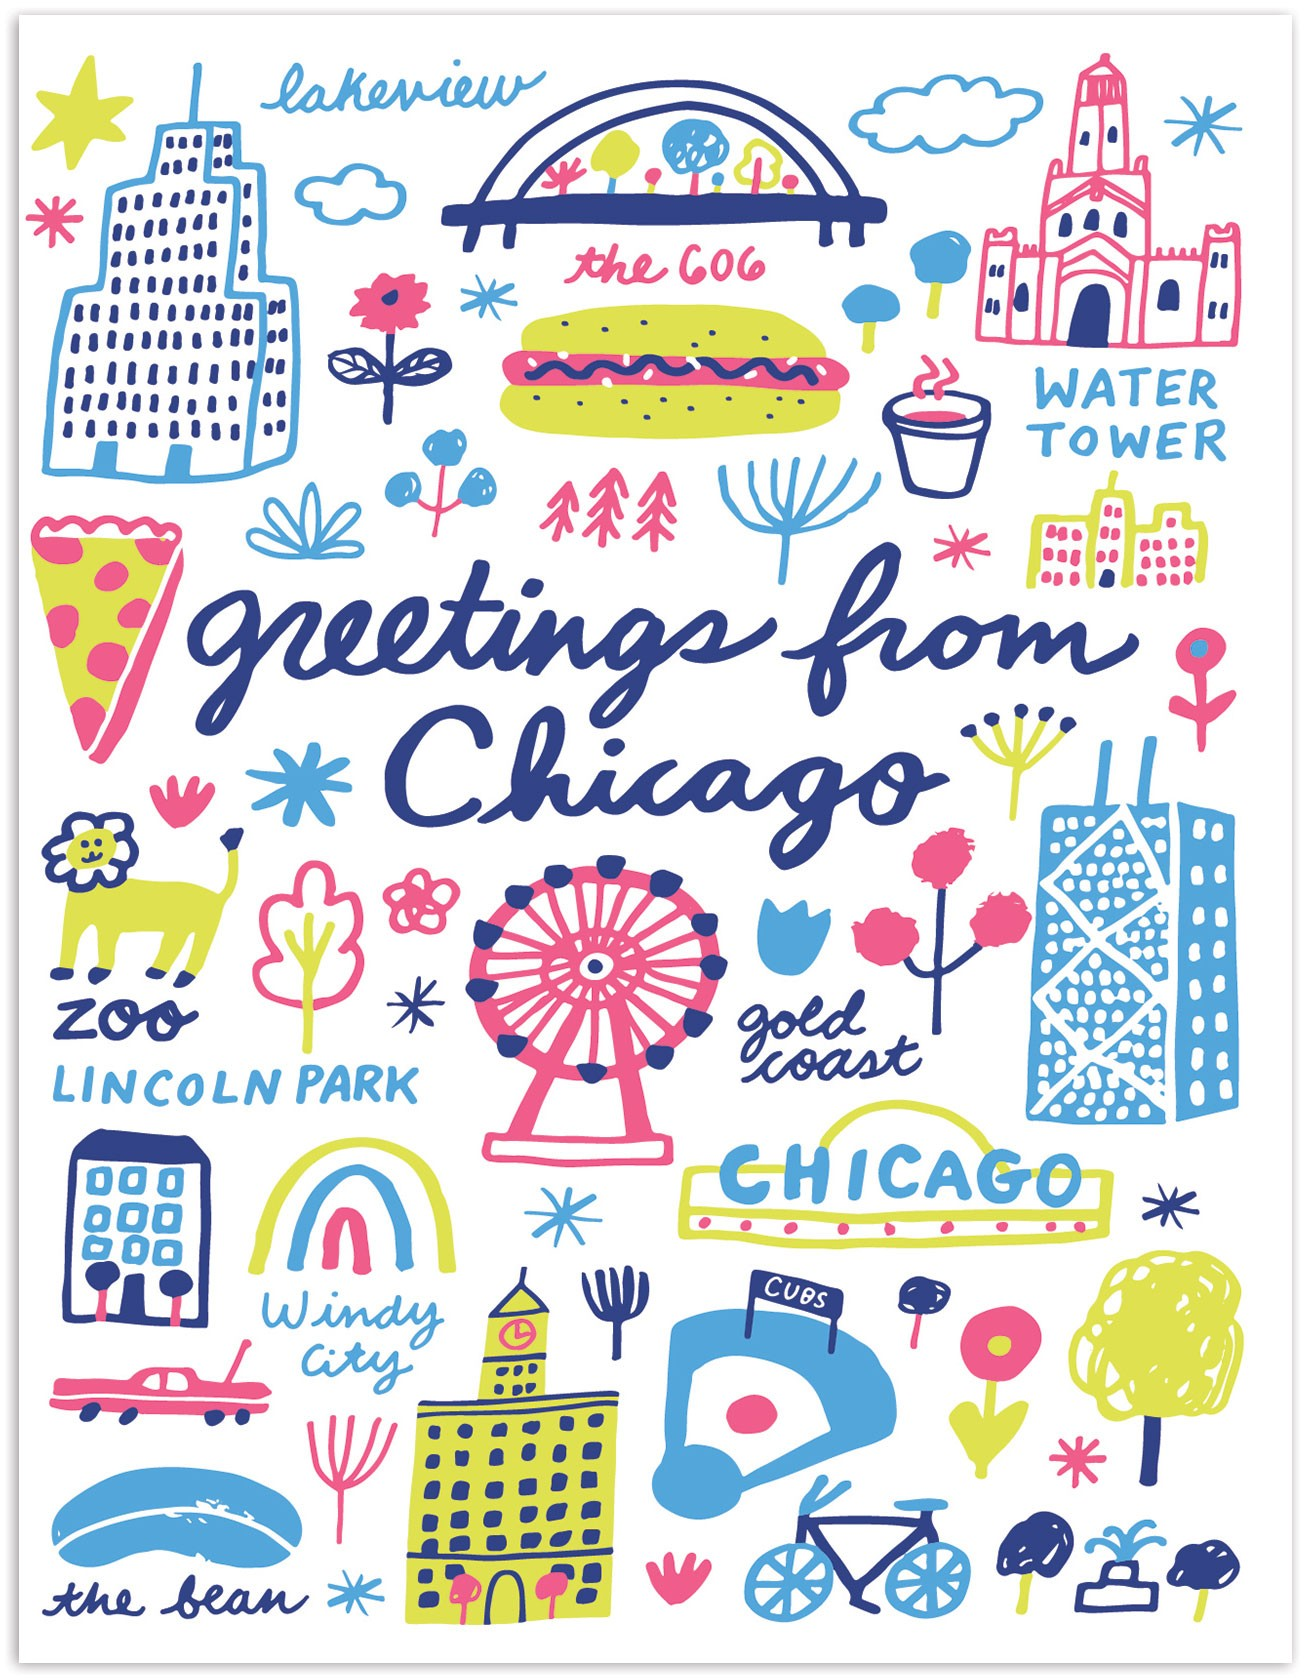 The Found Greetings From Chicago Landmarks